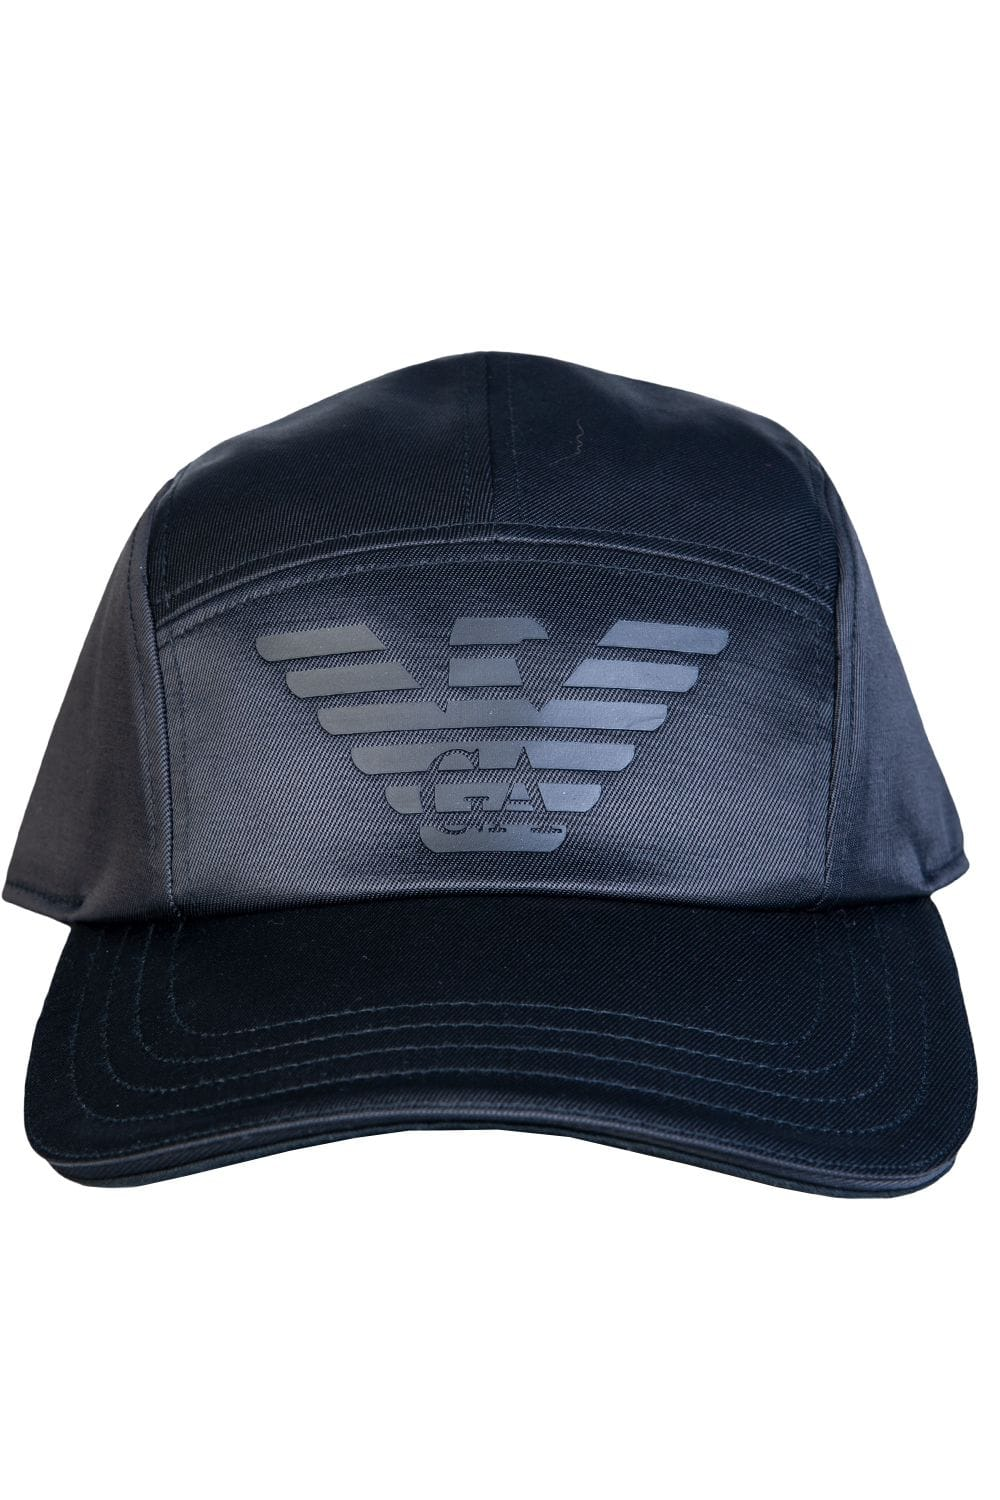 81844085a22 Emporio Armani Cap Baseball 627325 8A501 - Accessories from Sage Clothing UK